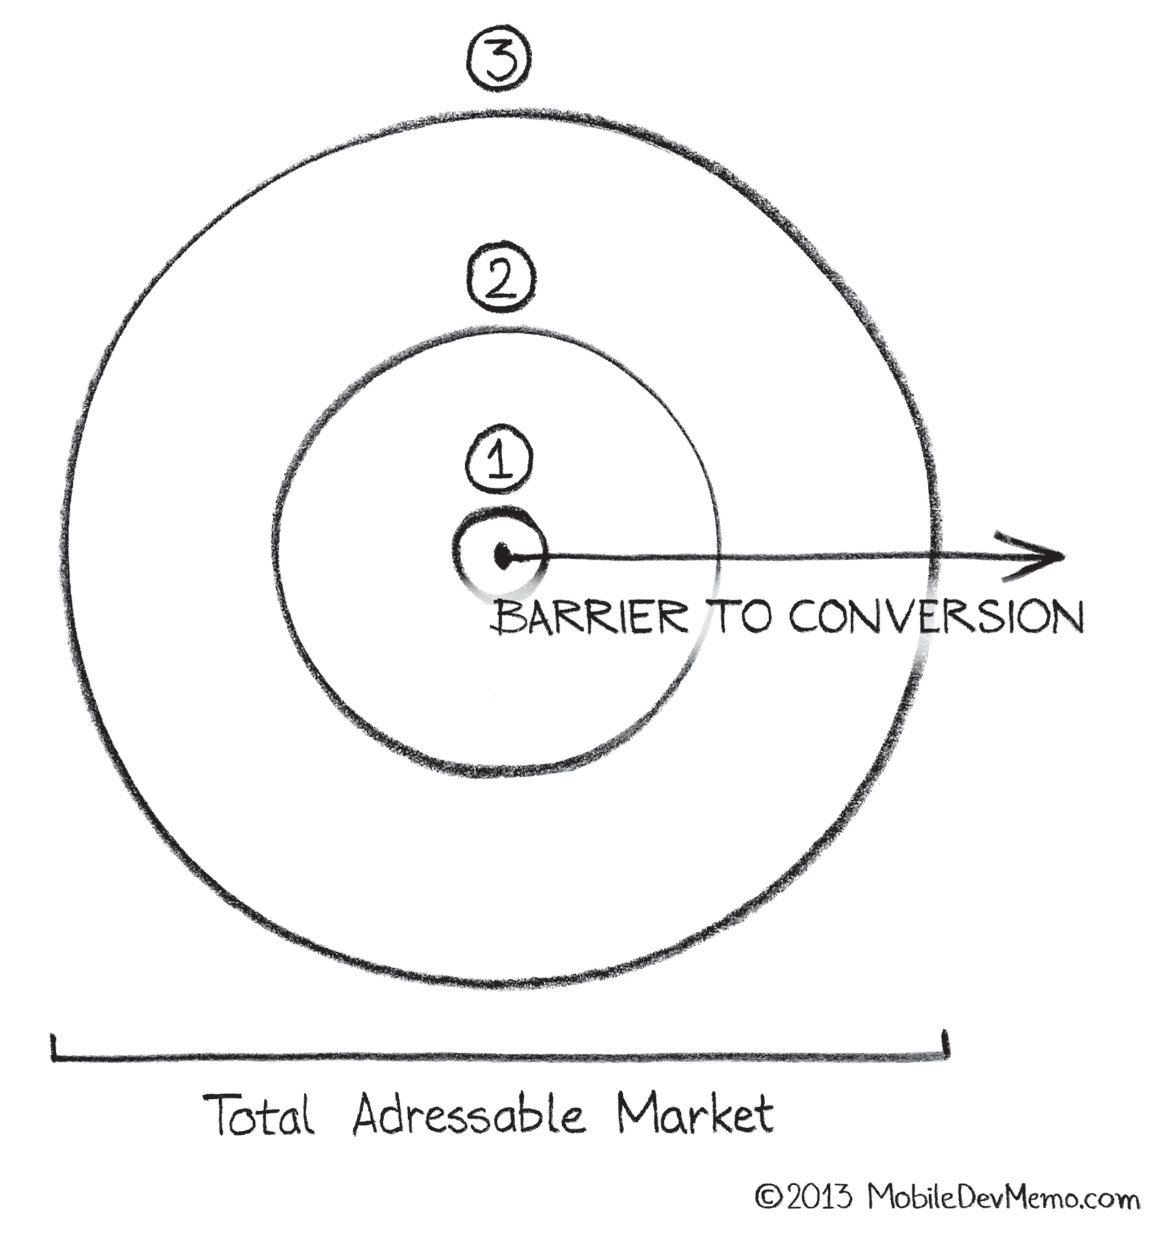 barrier-to-conversion